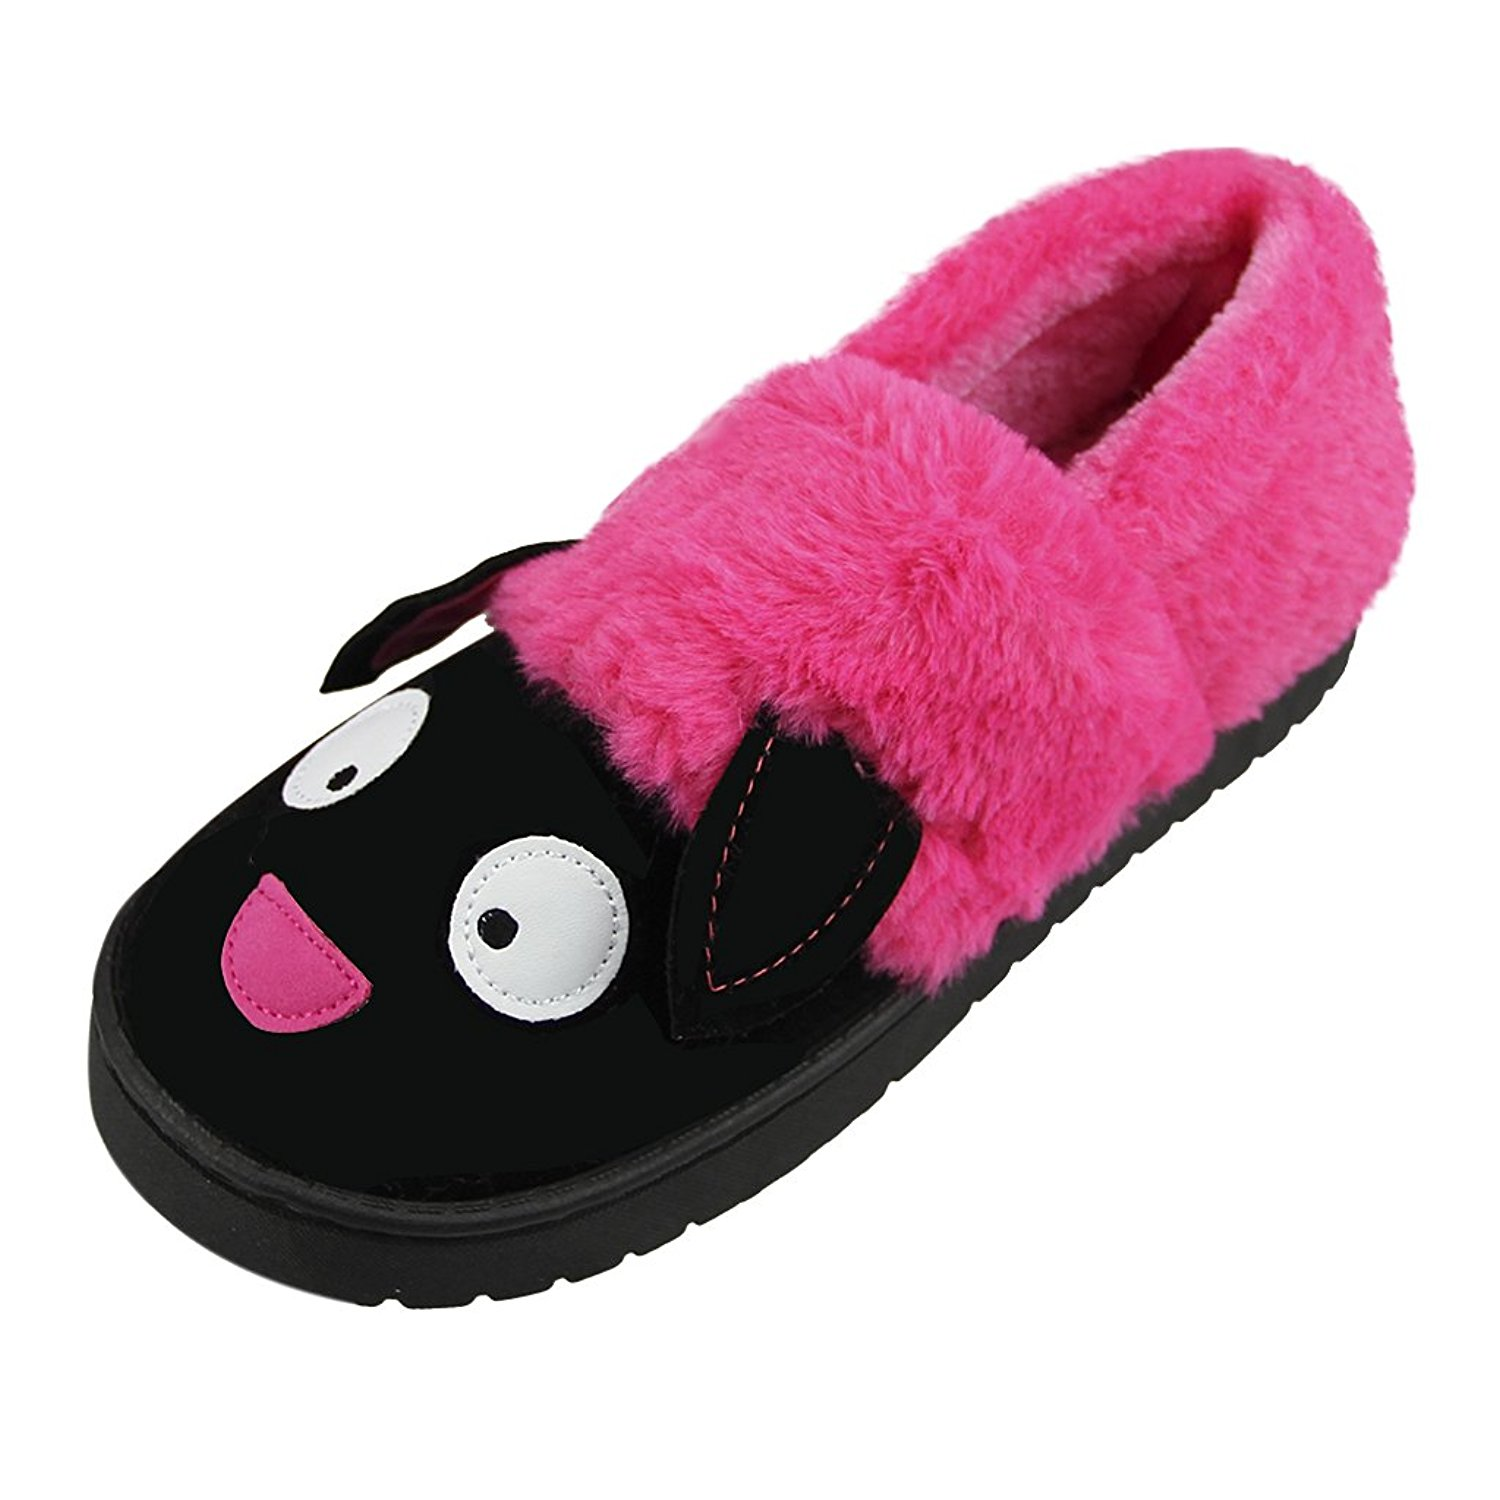 1c22ba6c33365 Cheap House Boots Slippers, find House Boots Slippers deals on line ...